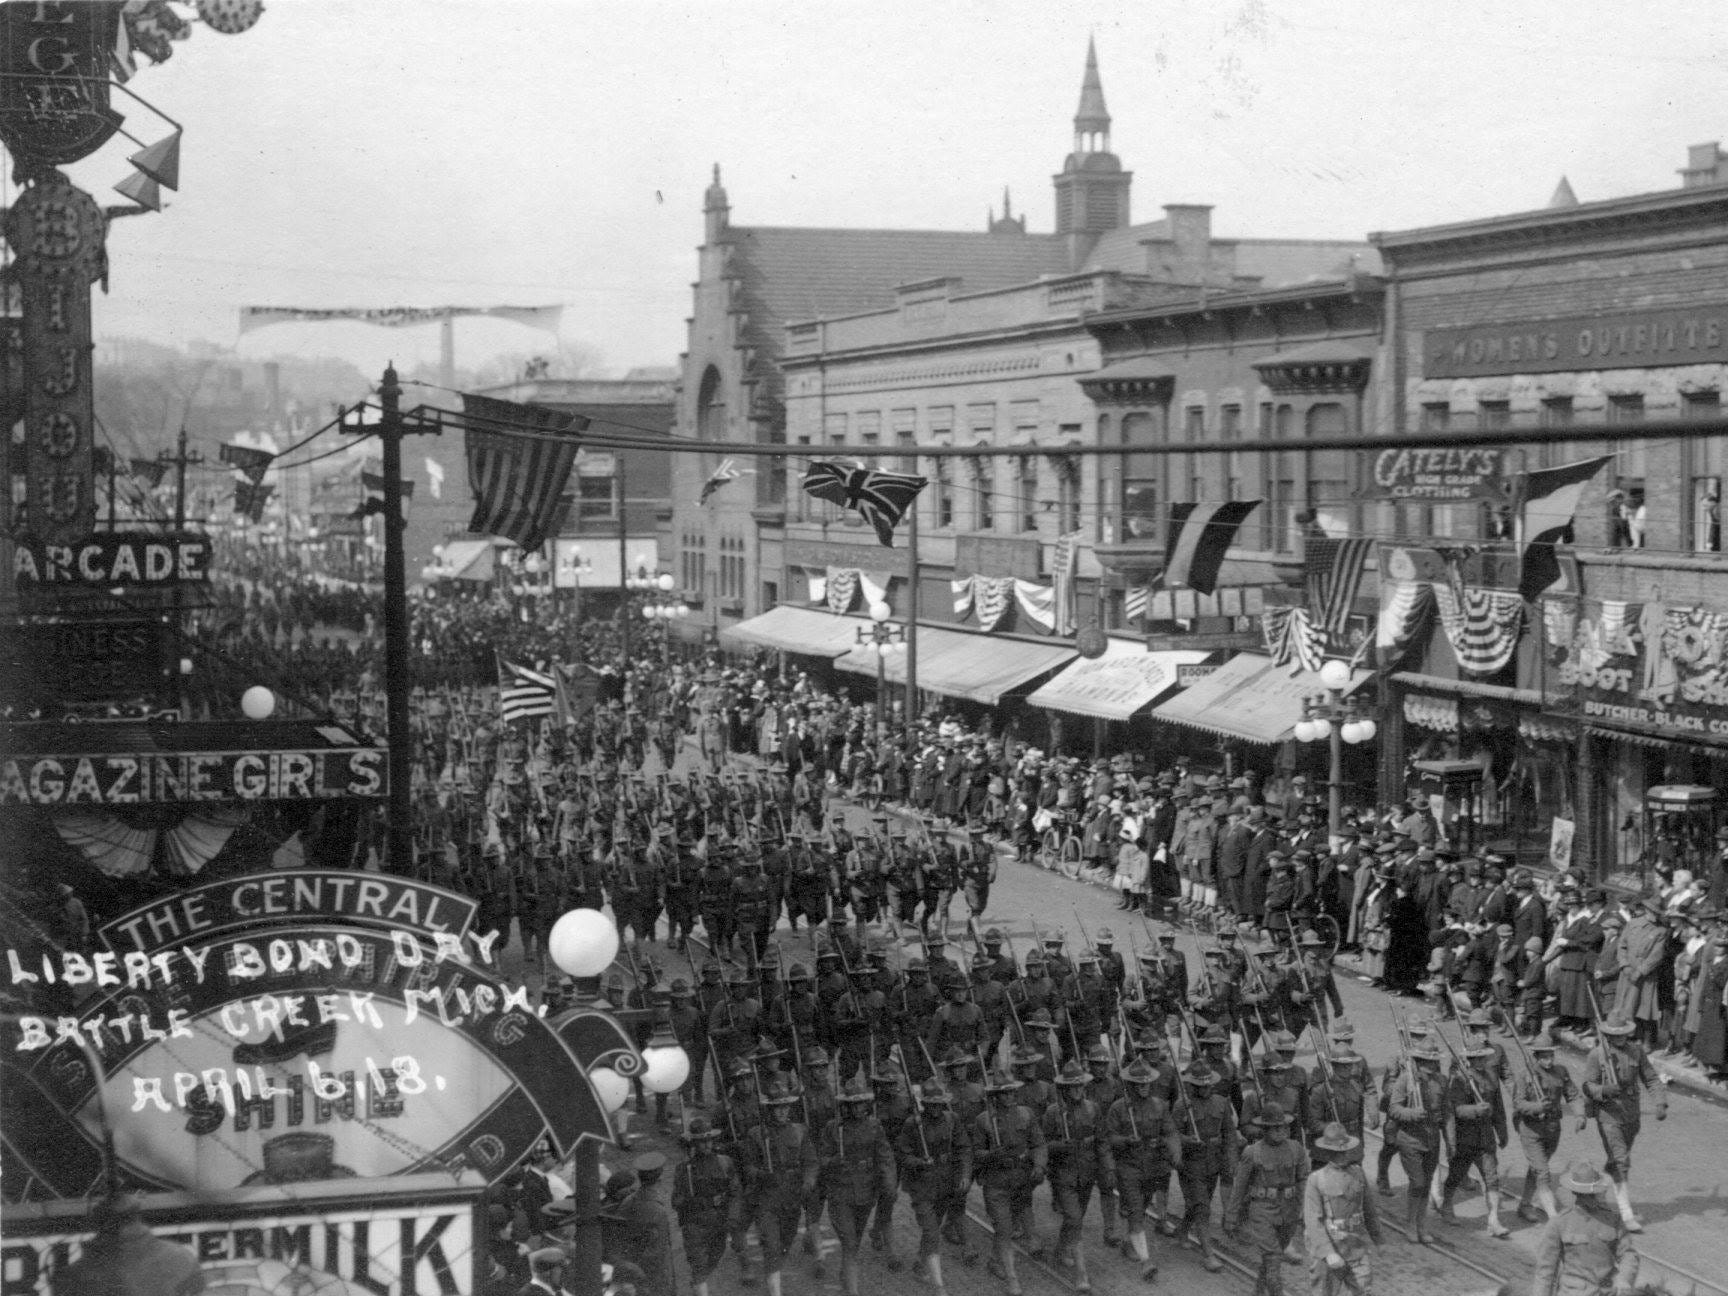 The Liberty Bond Day Parade down Michigan Avenue on April 6, 1918.